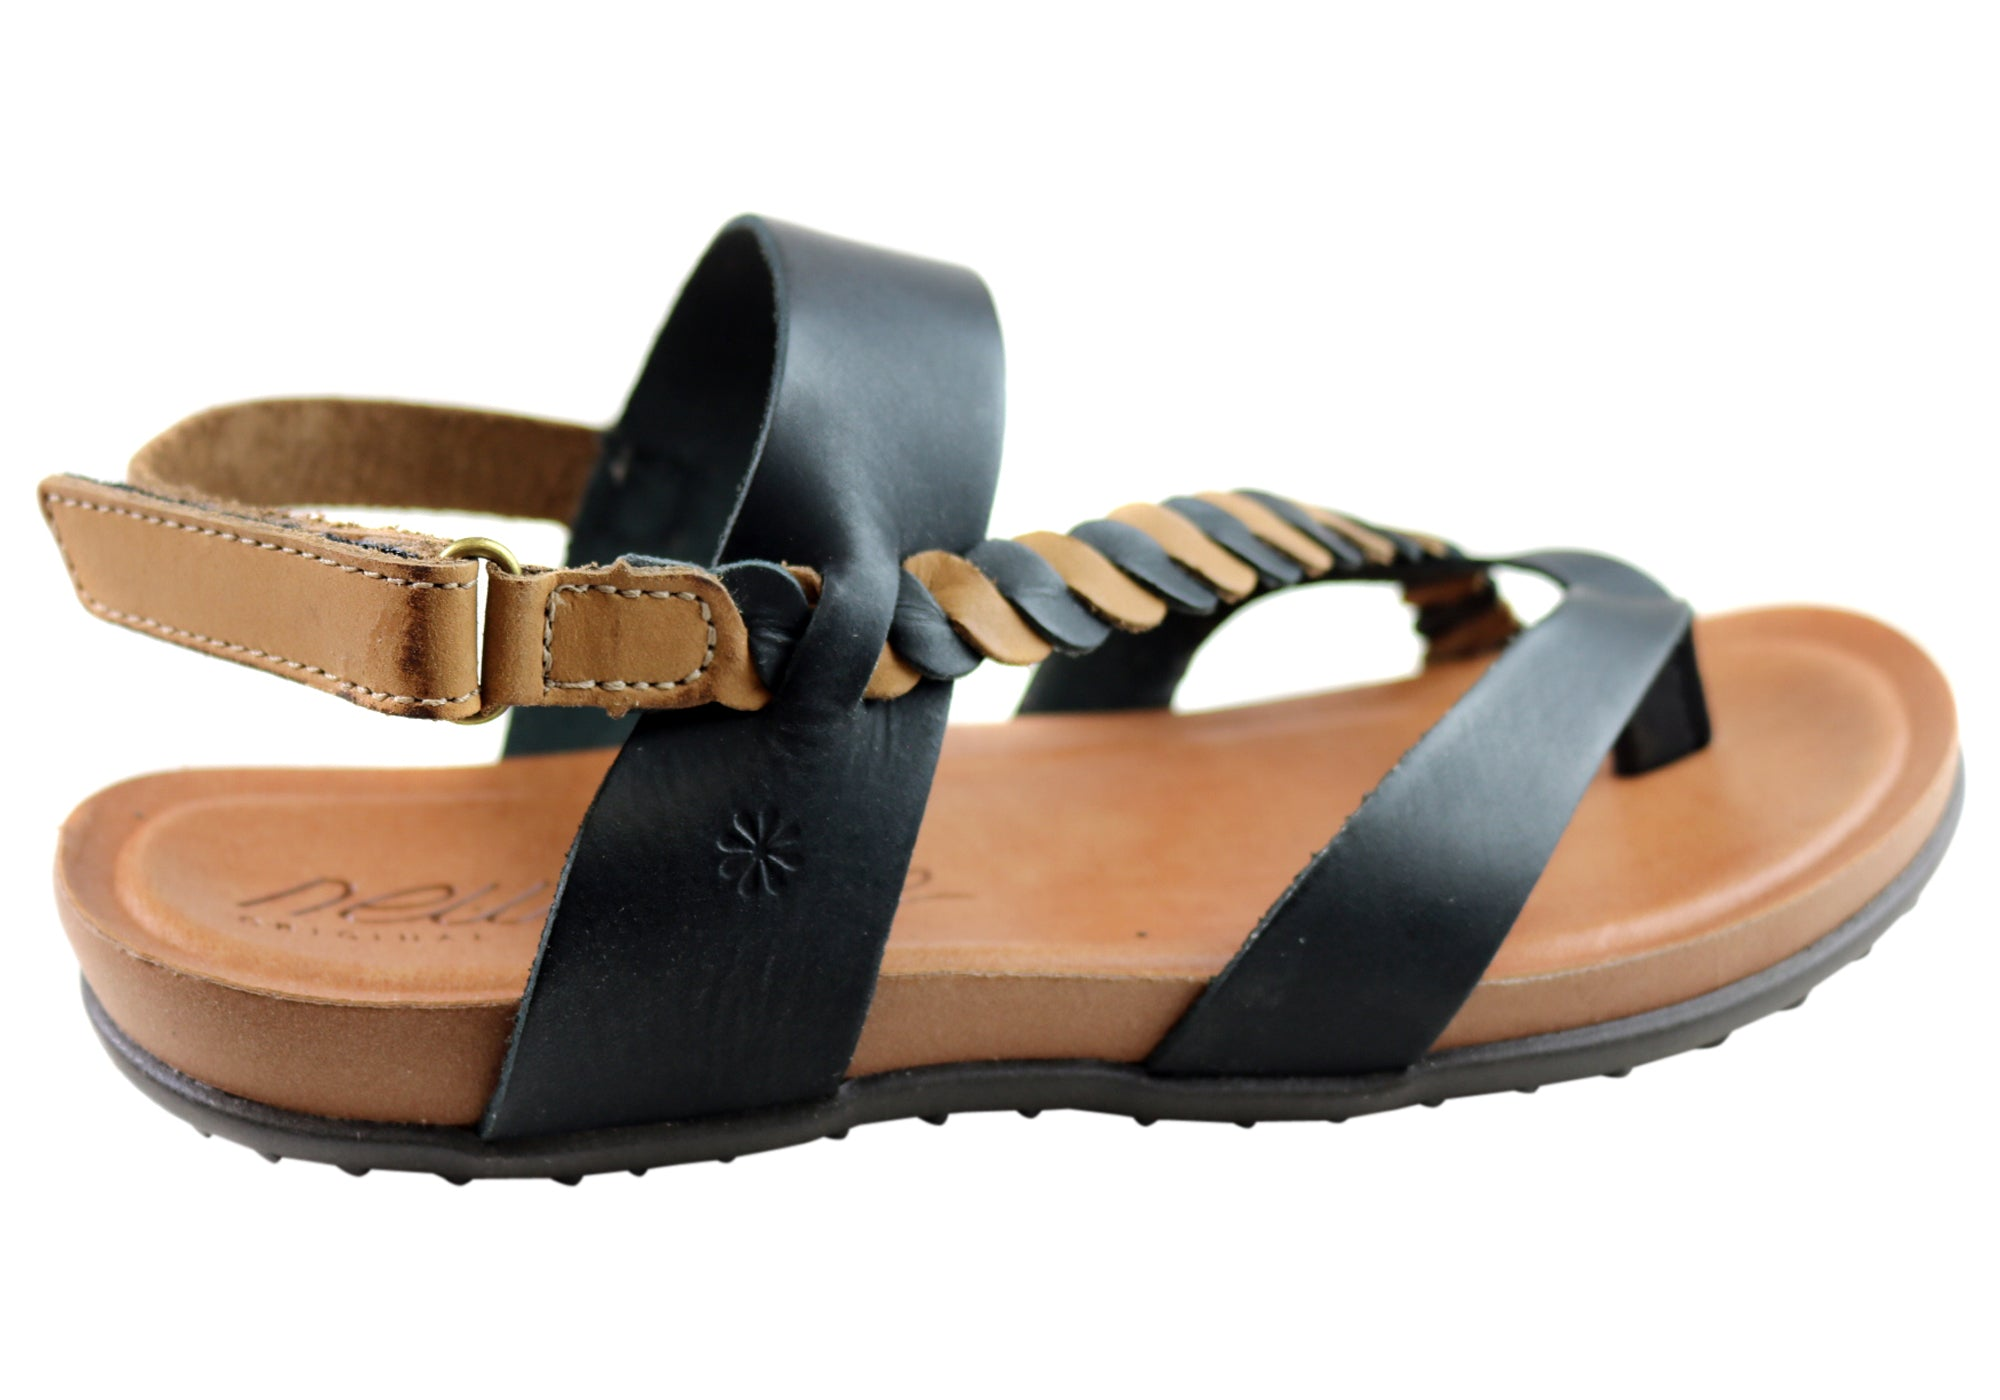 NEW ANDACCO YORY WOMENS COMFORT FLAT LEATHER SANDALS MADE IN BRAZIL